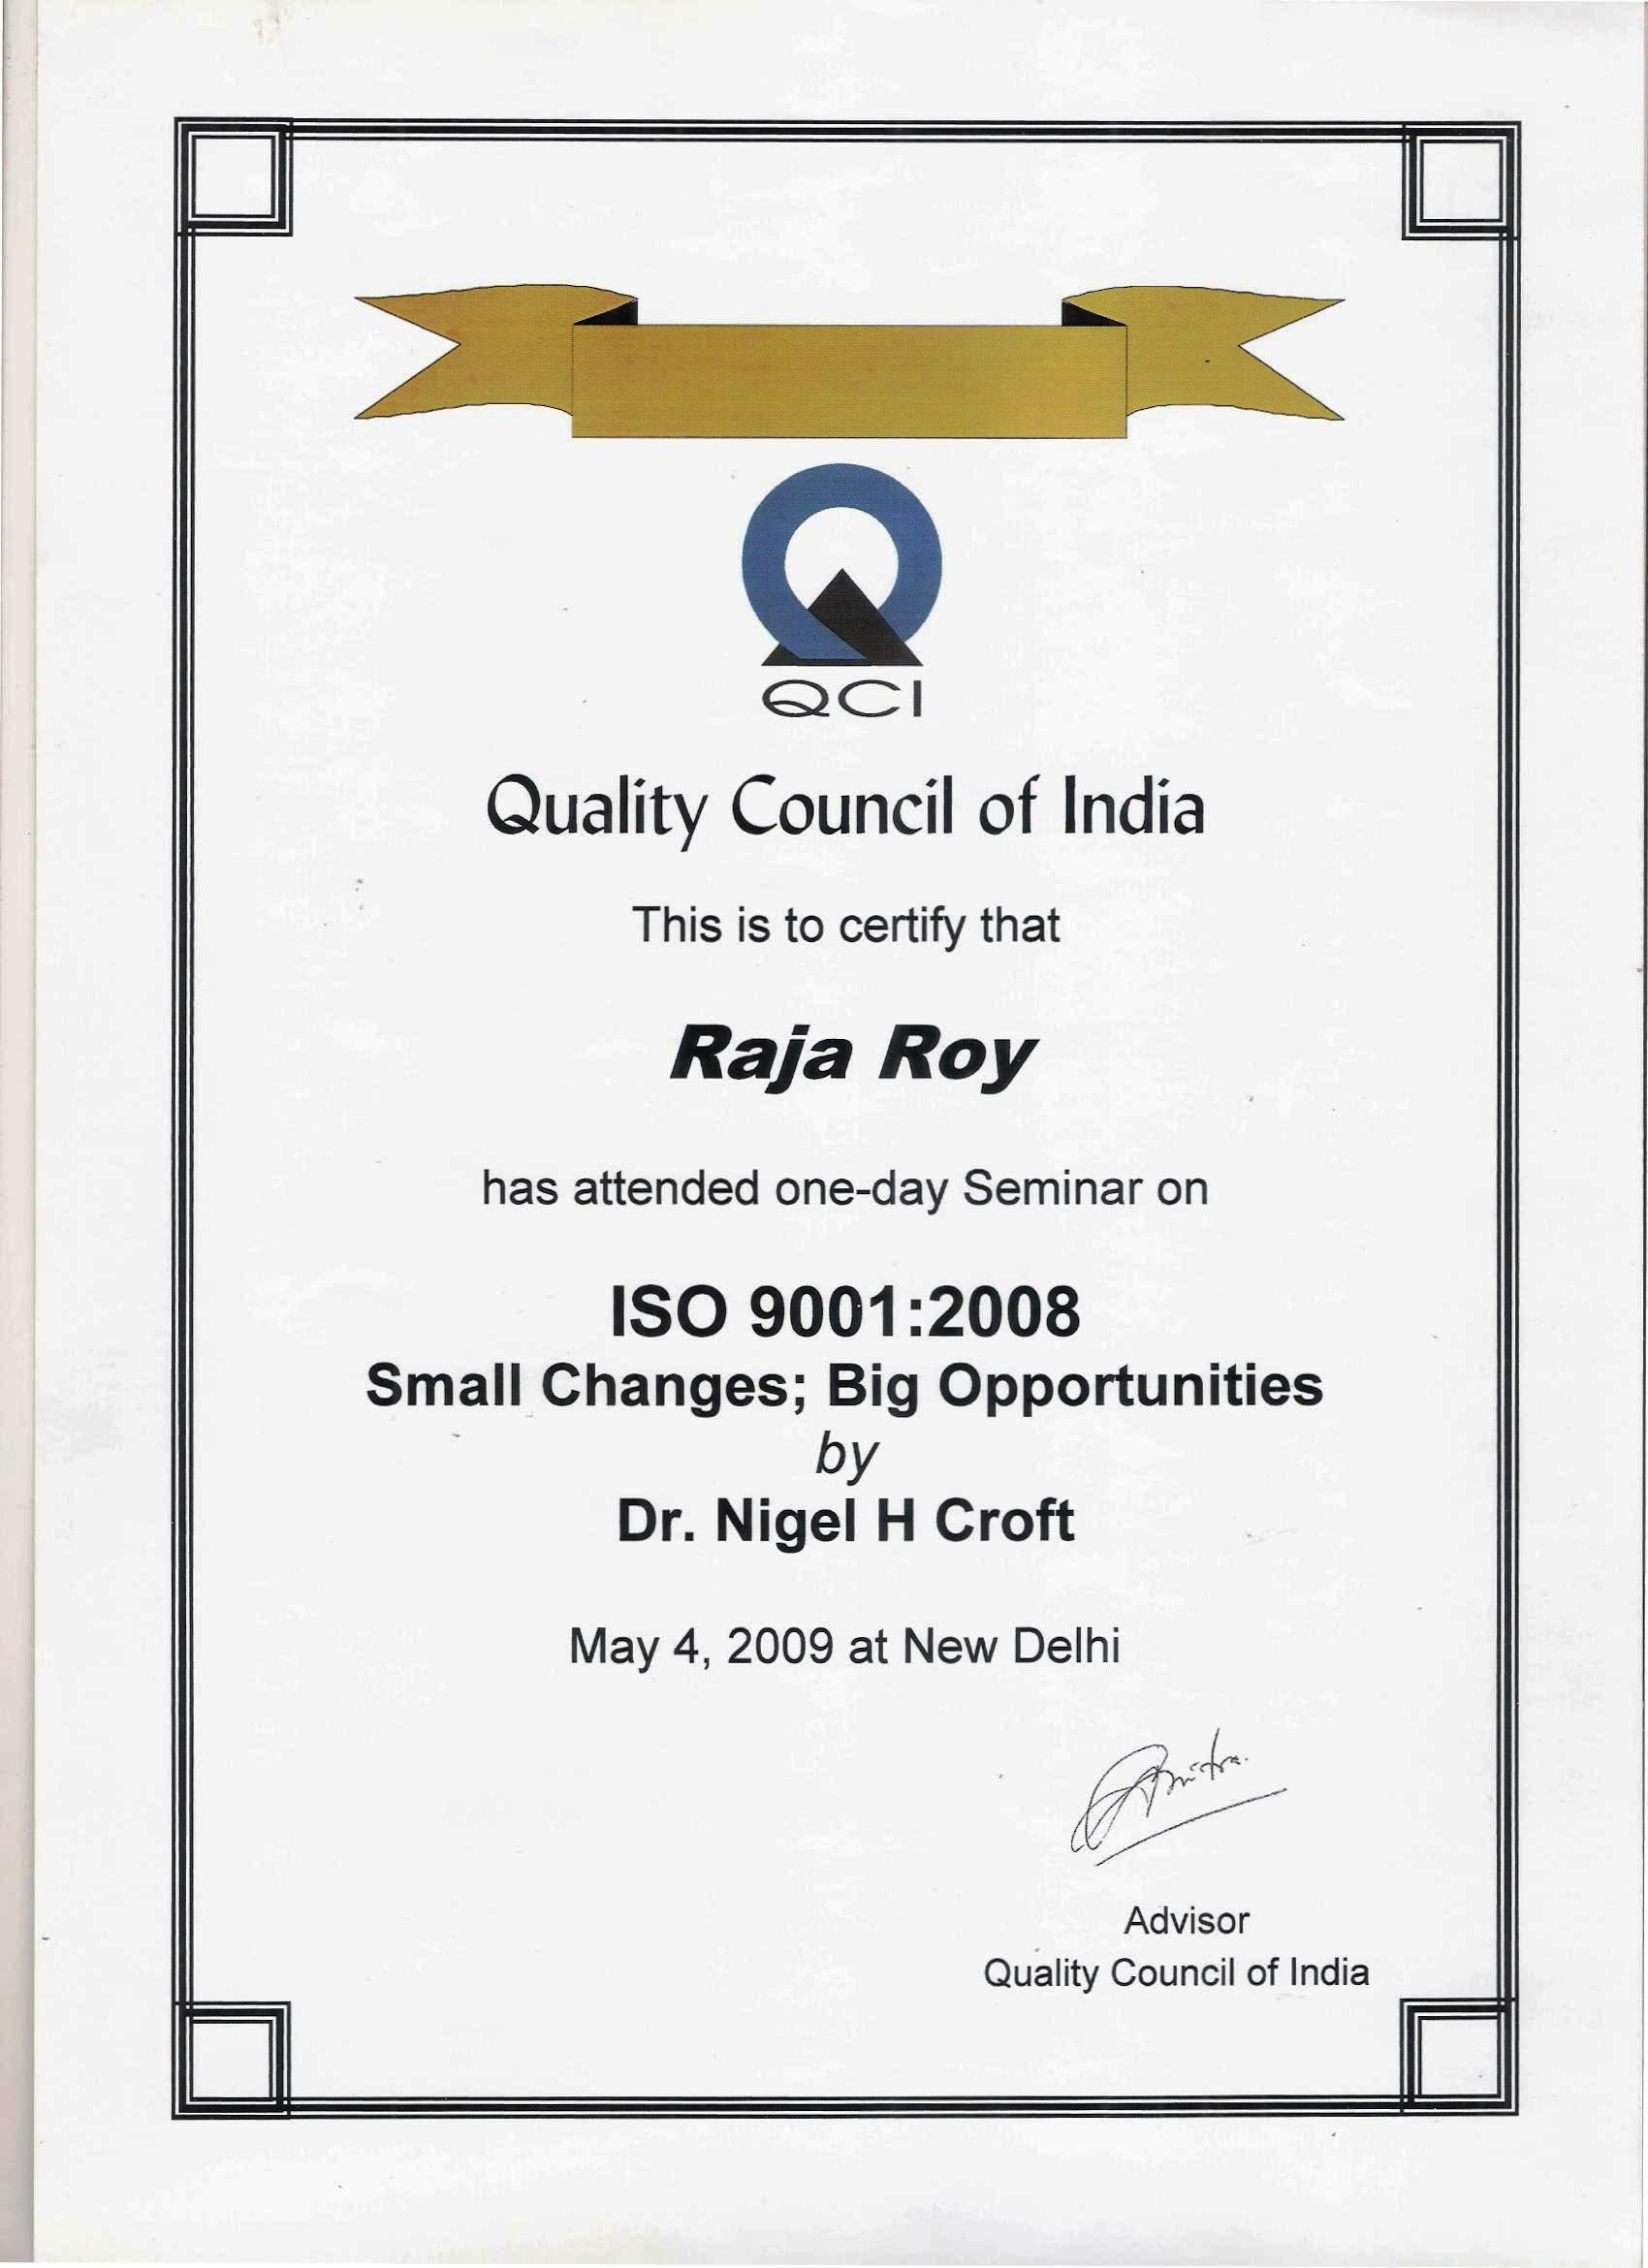 Iso consultants in kolkata certified internal auditor for ts 16949 trained by dr nigel croft iso technical committee member on iso 90012015 small changes big opportunities 1betcityfo Gallery